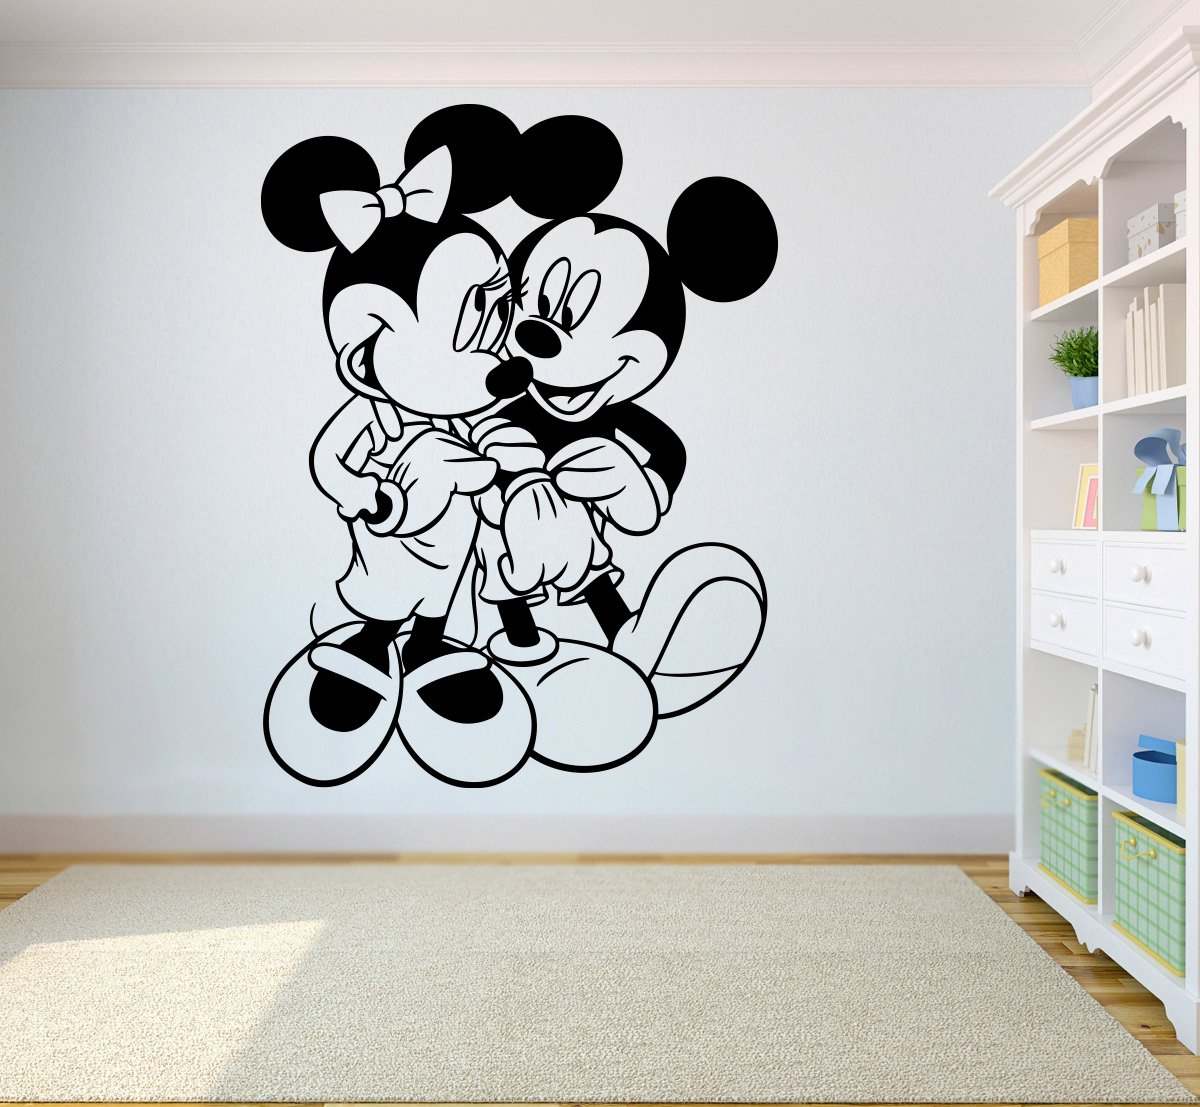 Mickey Mouse Wall Mirrors Within Famous Amazon: Mickey Mouse & Minnie Mouse Vinyl Poster Cartoon (View 8 of 20)